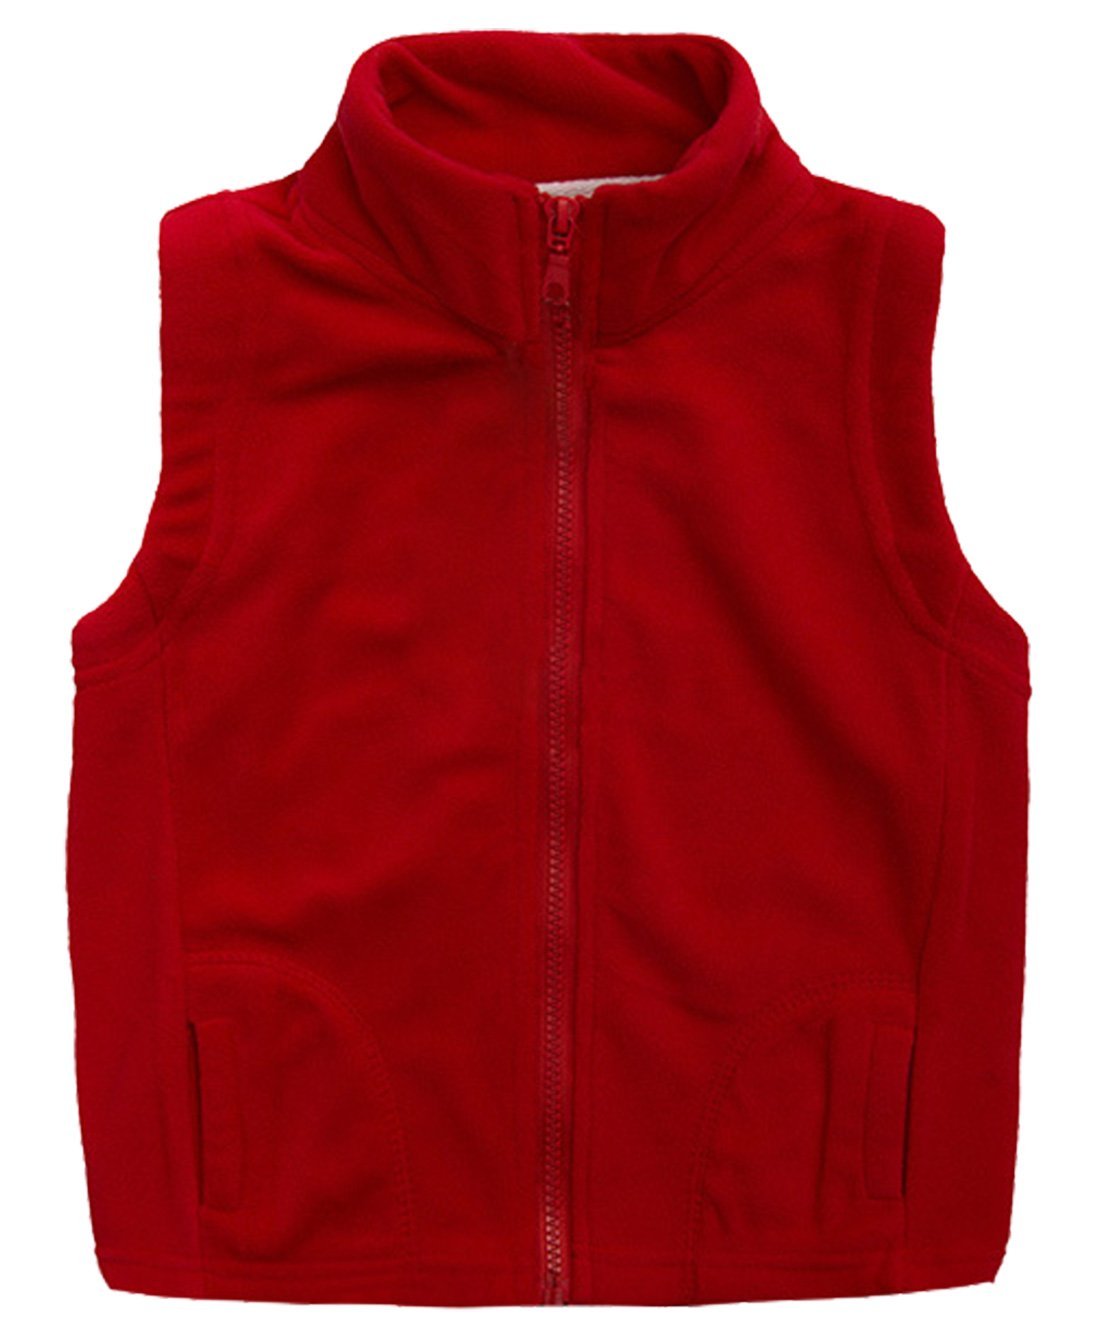 Aivtalk Little Boys' Fleece Warmth Sleeveless Vests Outfit Zipper Pocket 2-9T